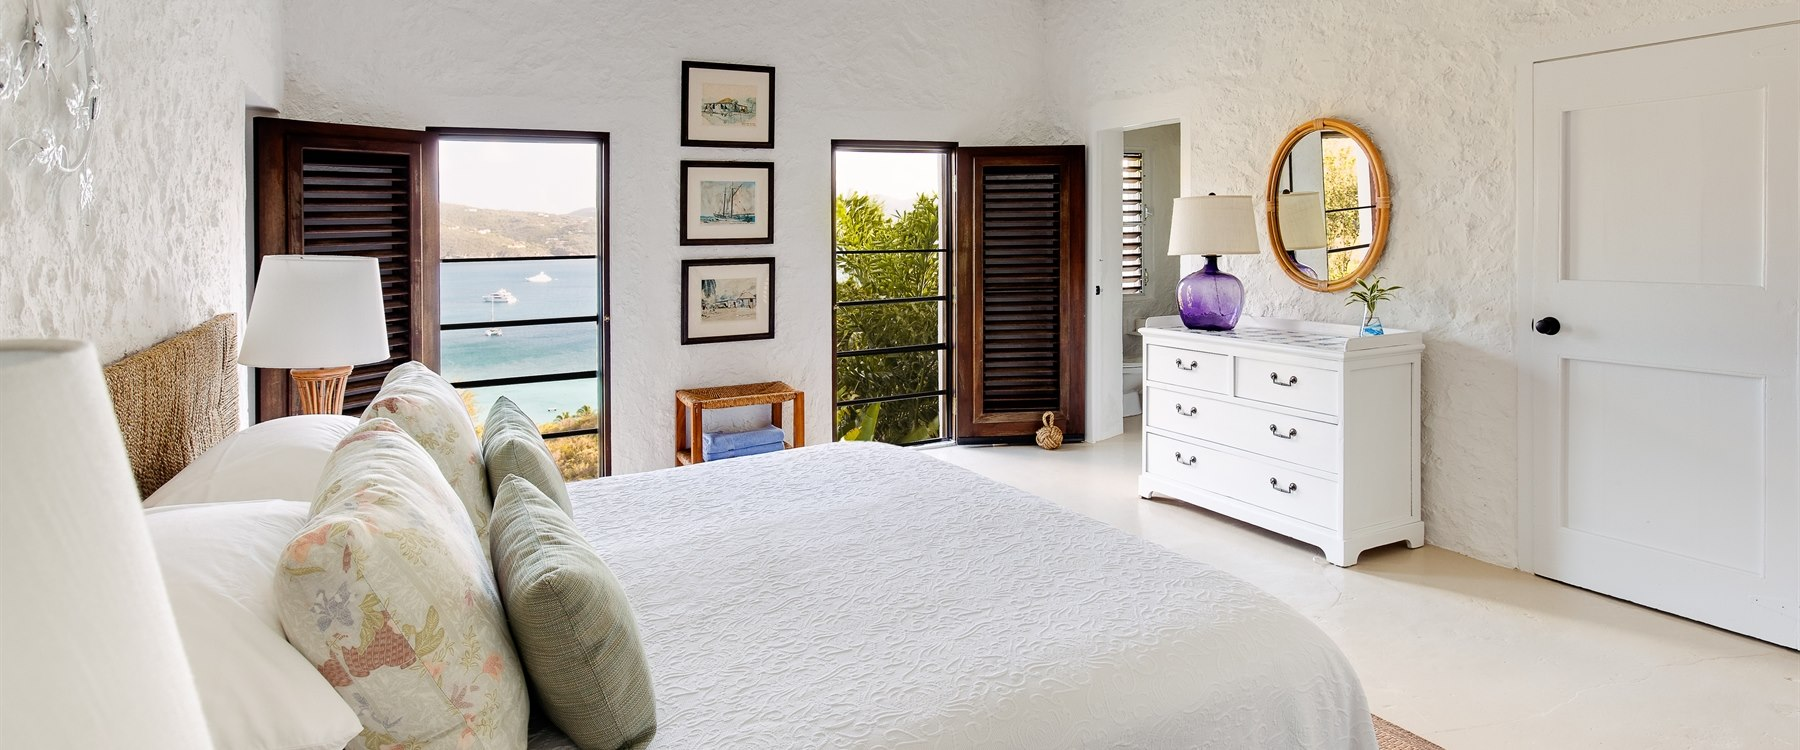 Sea view bedroom at Tennis courts at Guana Island, British Virgin Islands